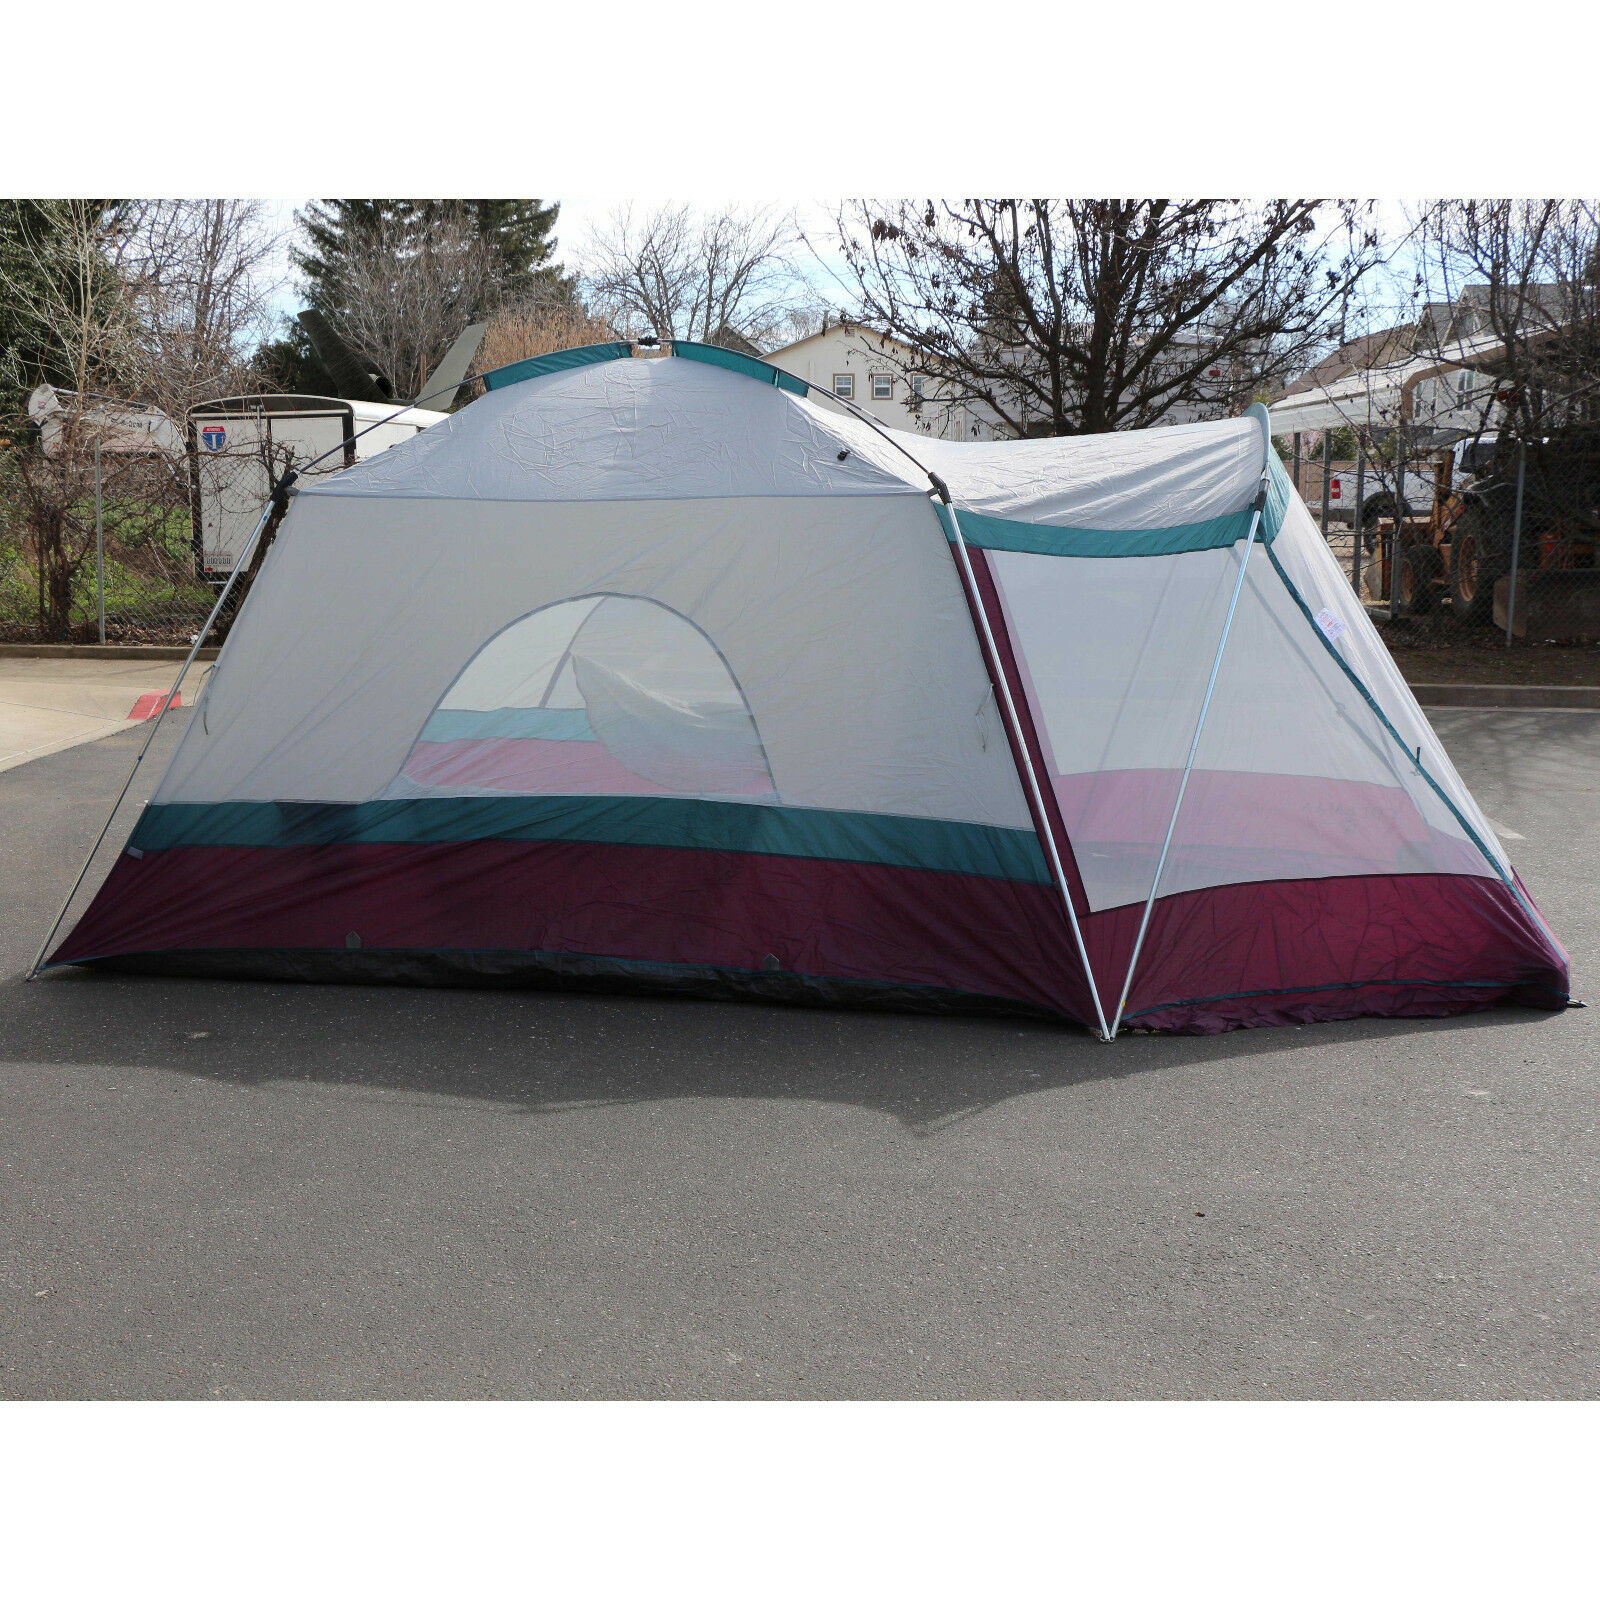 Coleman 12x10 Family Dome Tent with 10x6 Screen Porch (18x10)